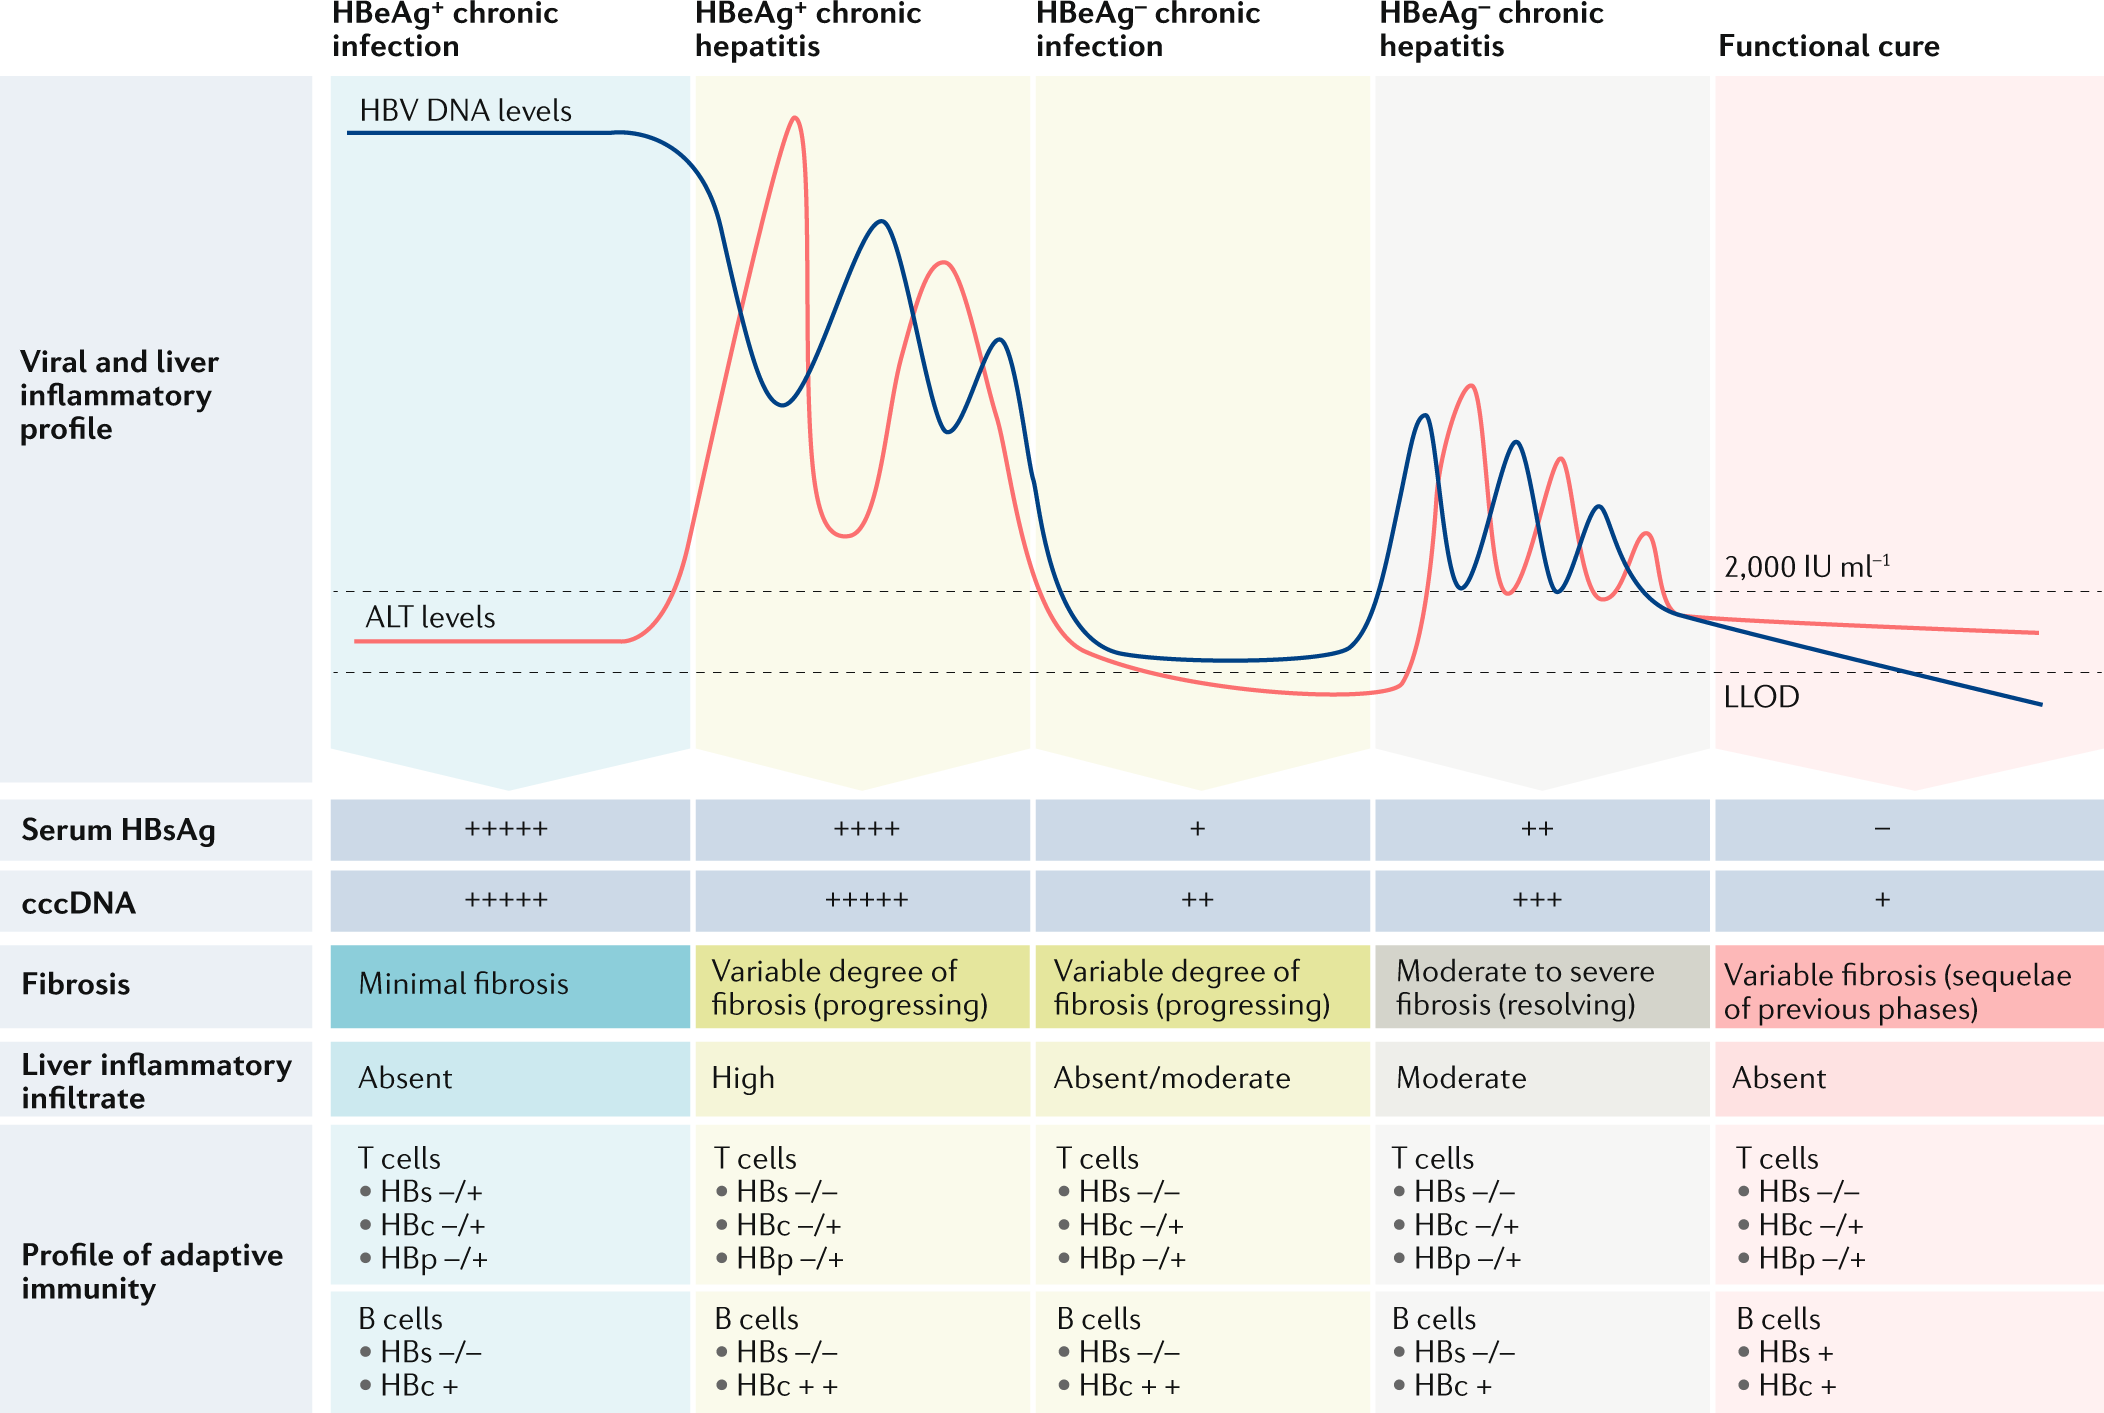 Therapeutic strategies for hepatitis B virus infection: towards a cure